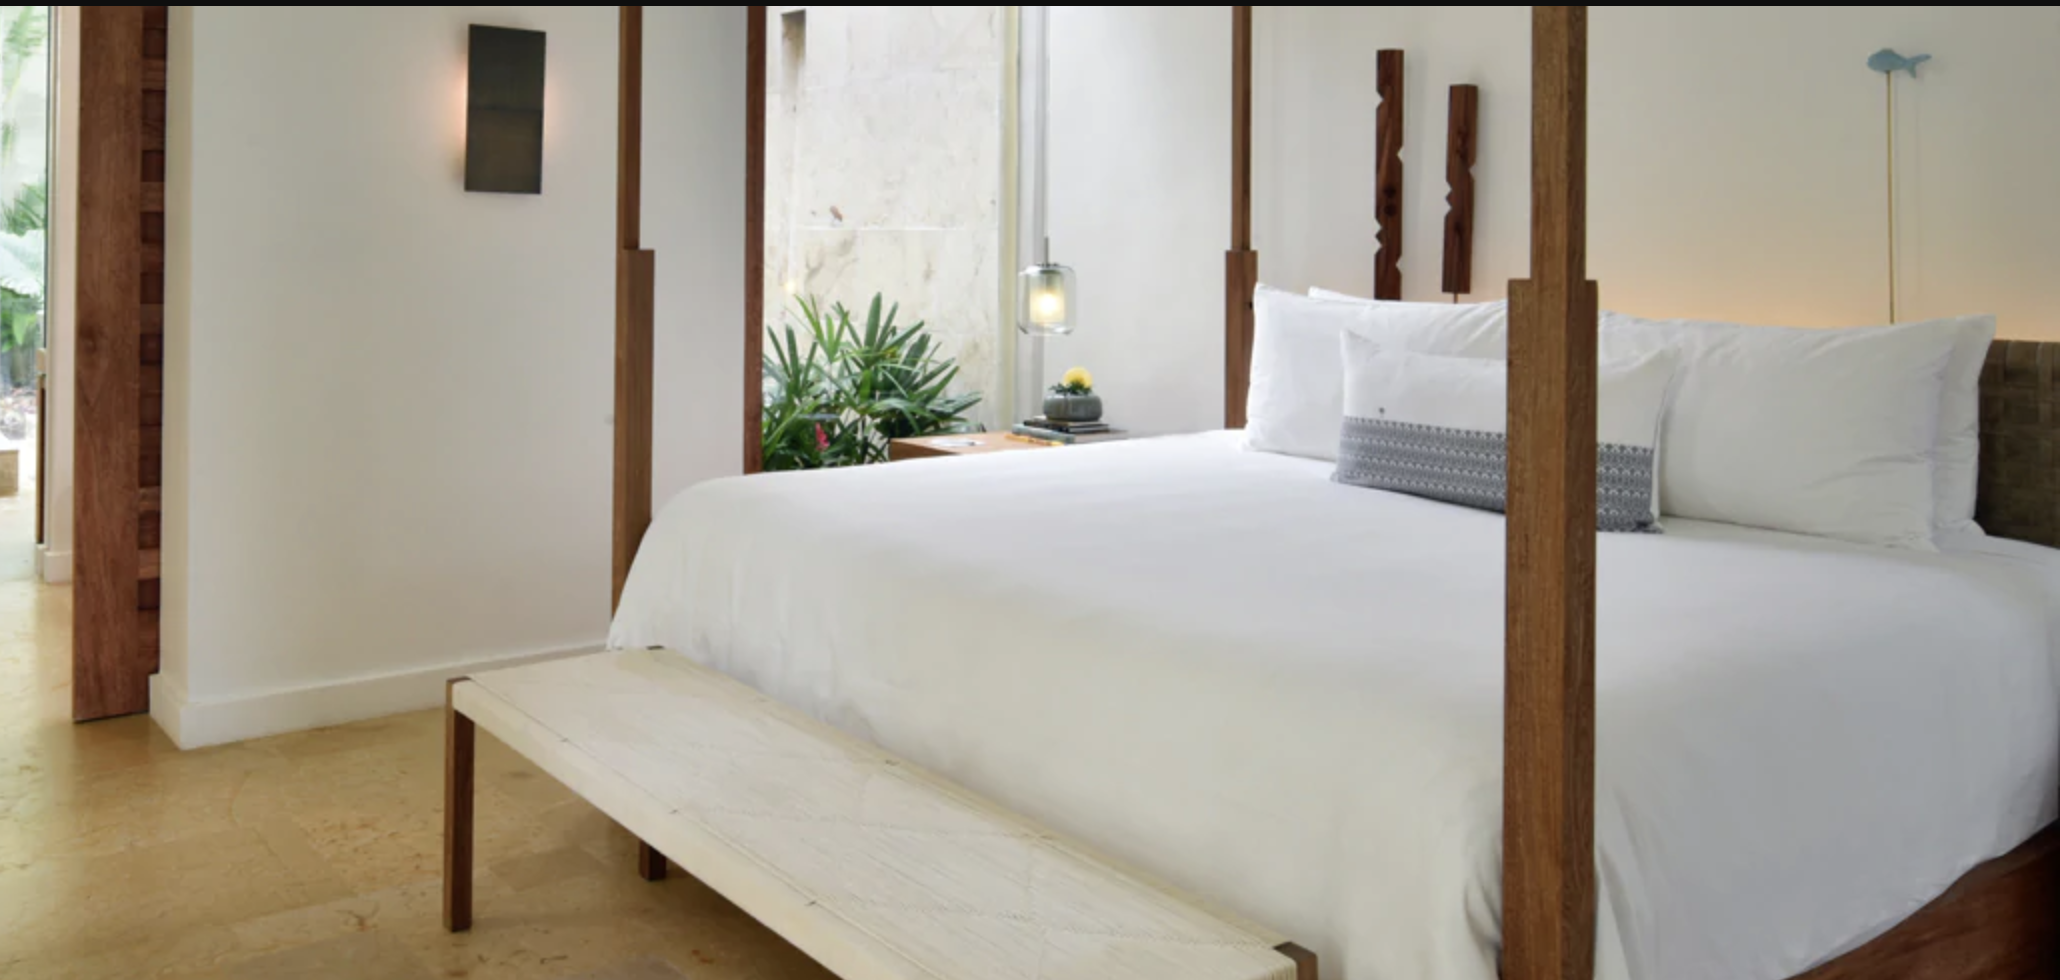 Bed designed by Oso